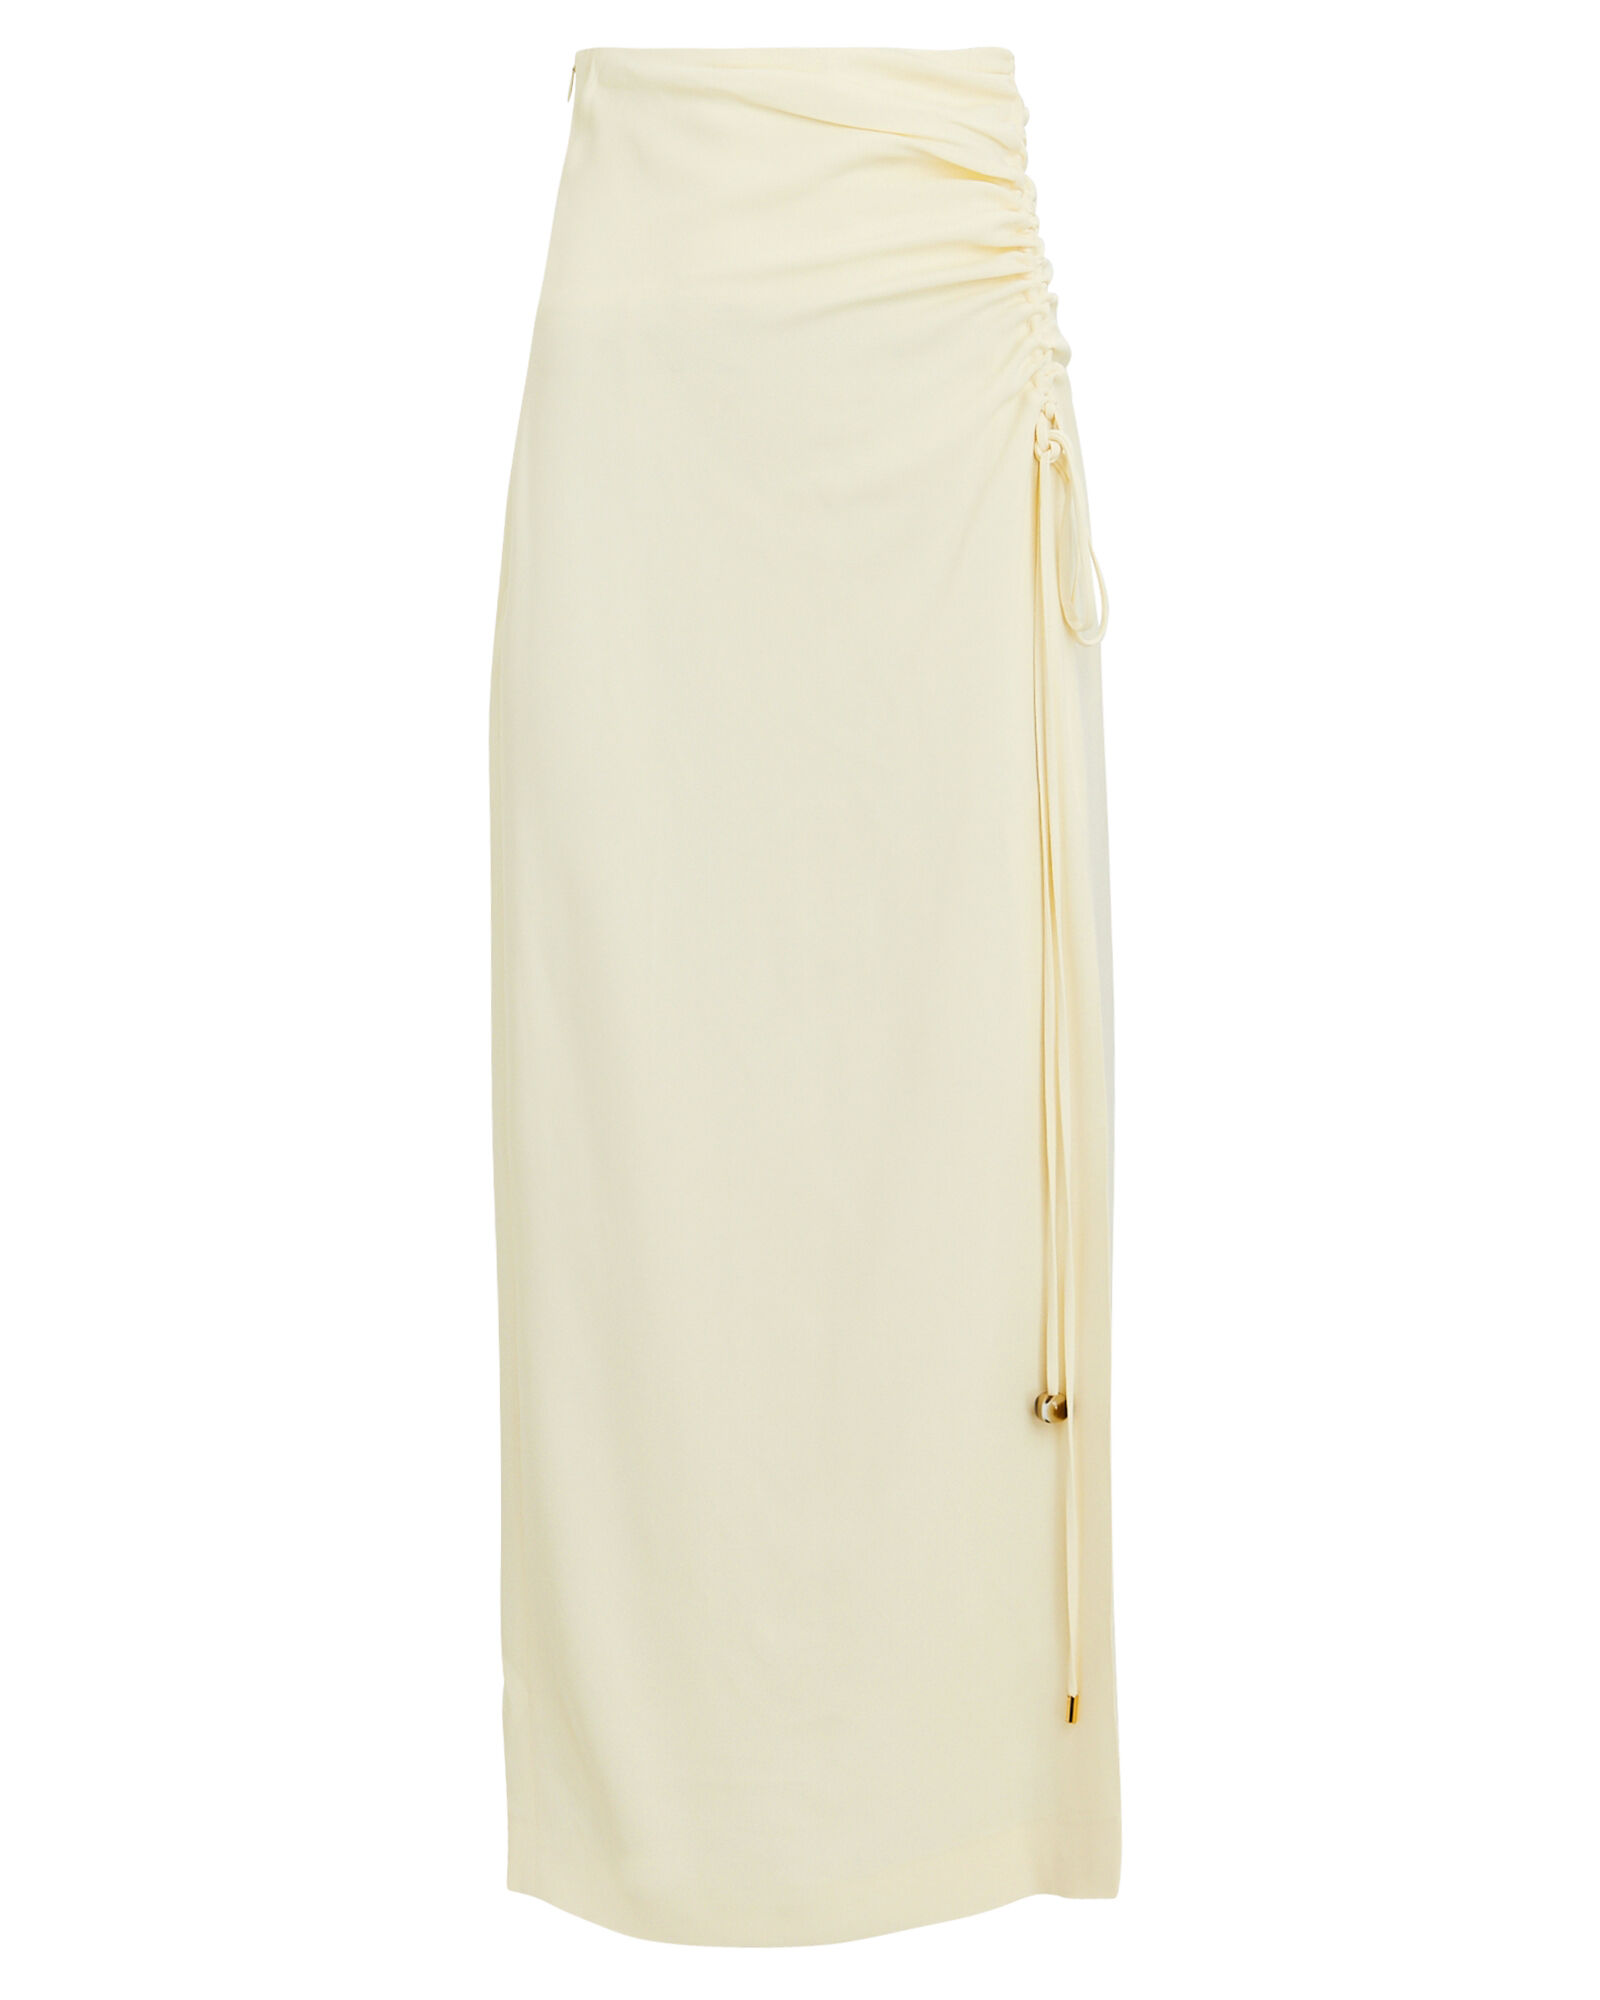 Malorie Ruched Midi Skirt, IVORY, hi-res